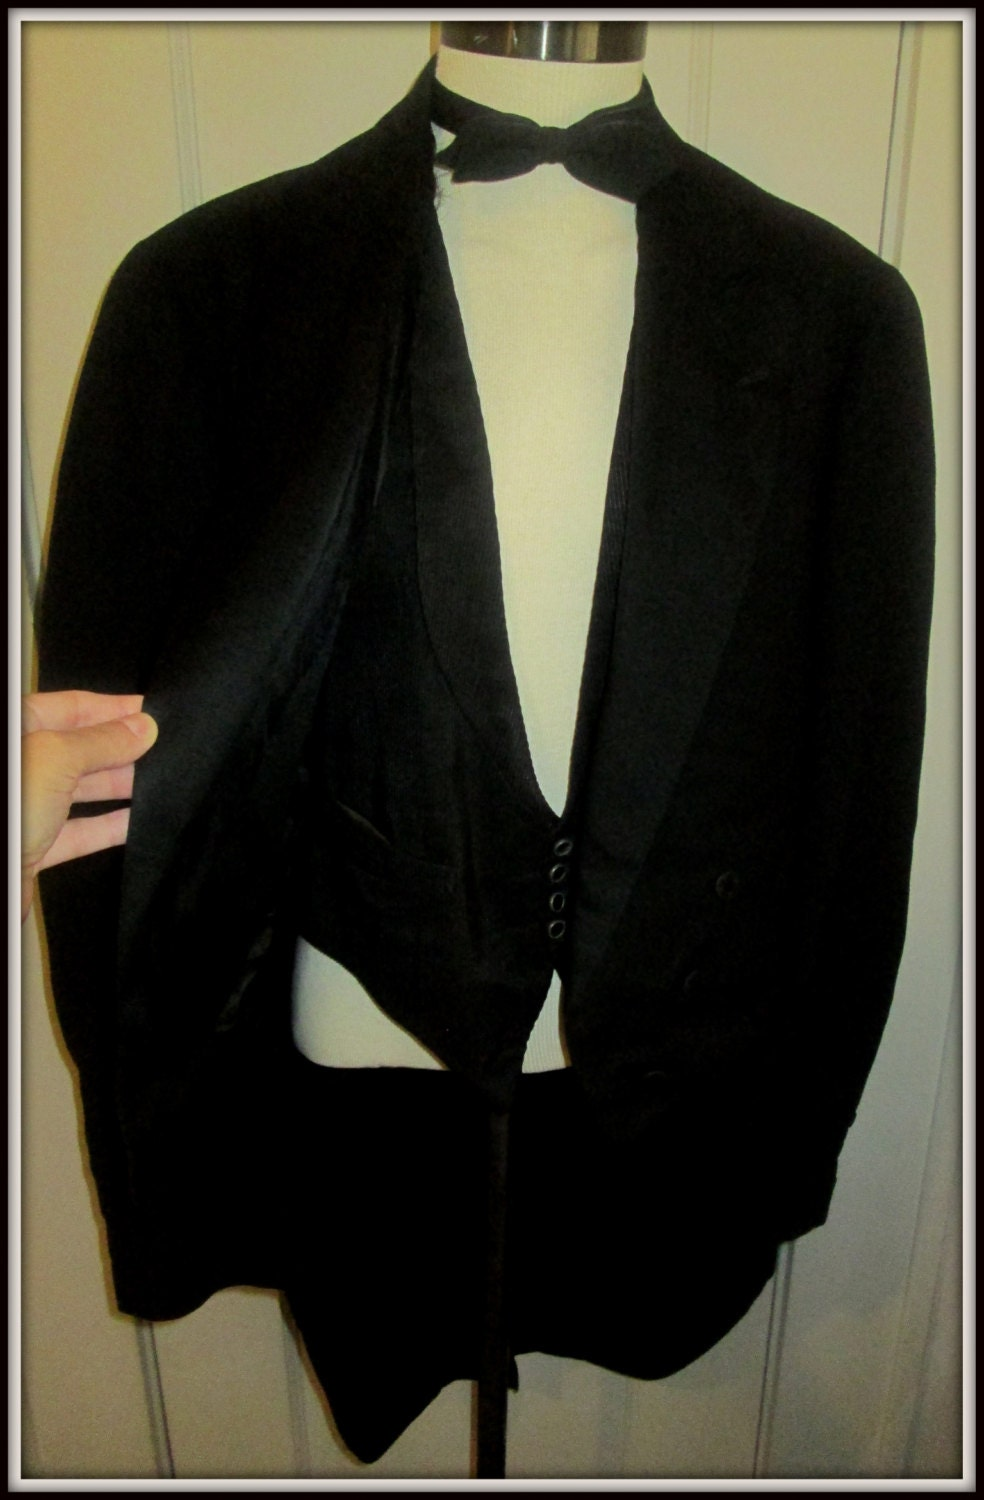 Vintage 1920s Mens Tuxedo Tailcoat Suit Gatsby By